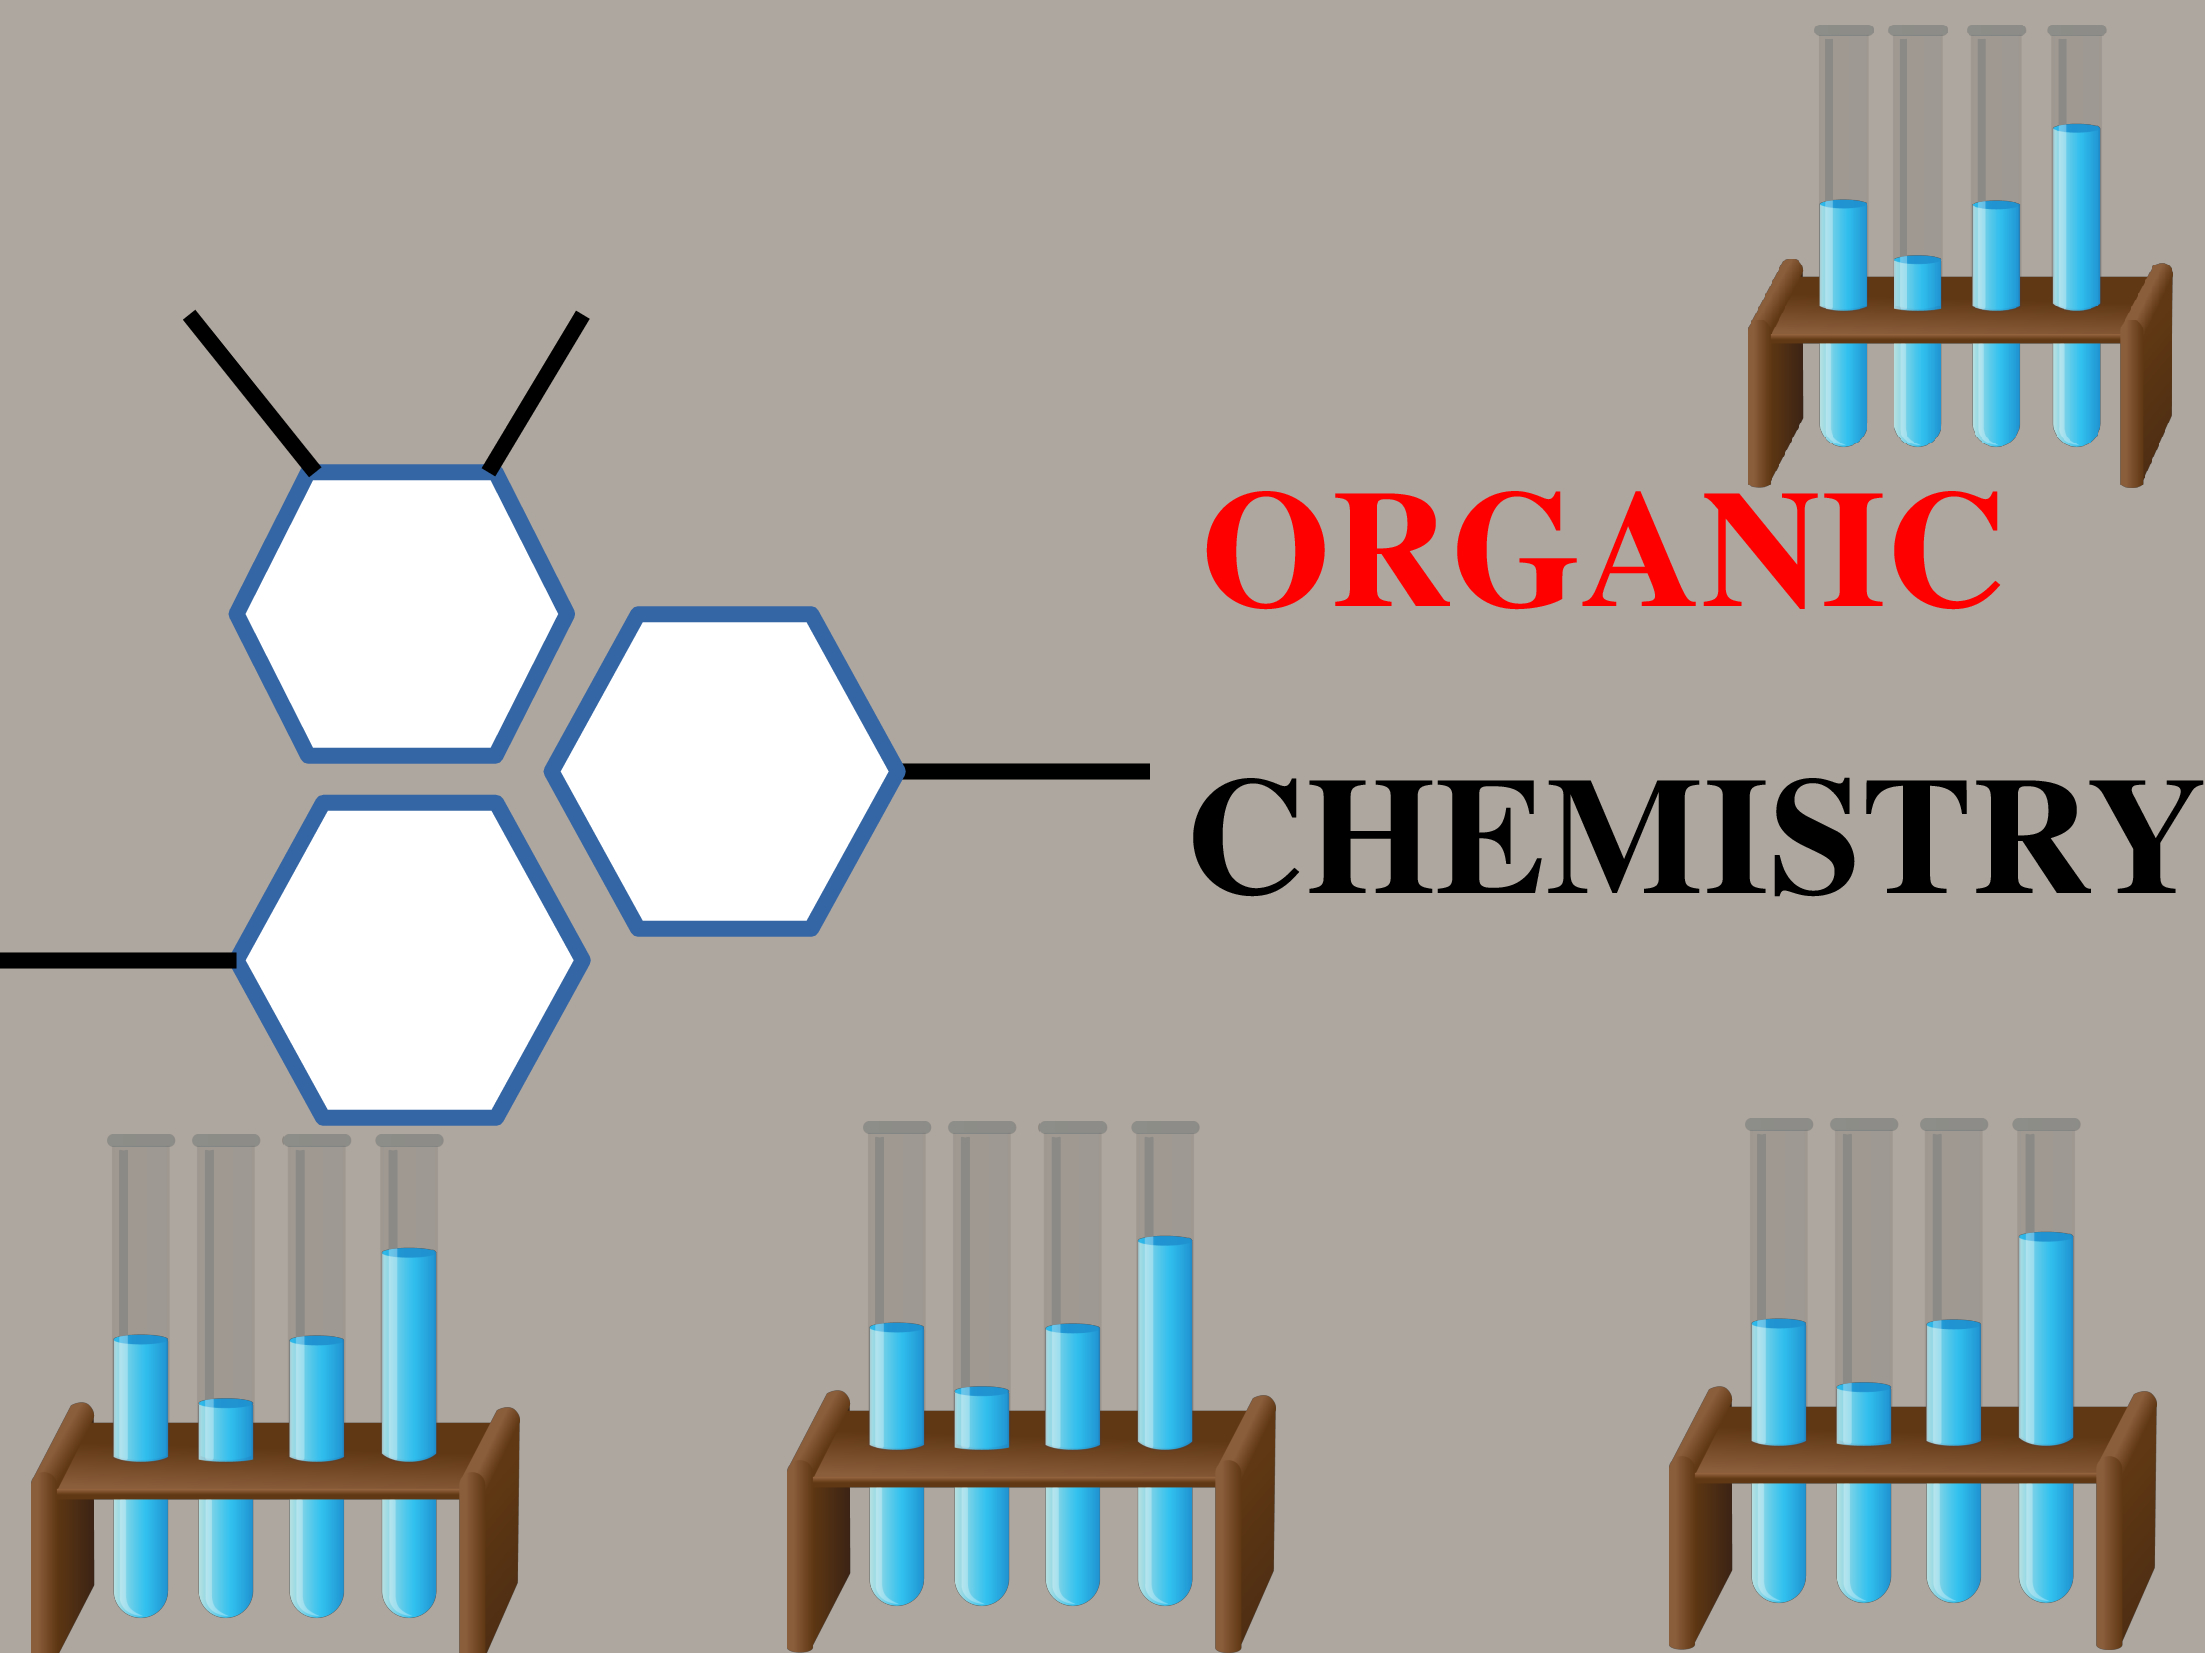 Organic chemistry – study of carbon compounds